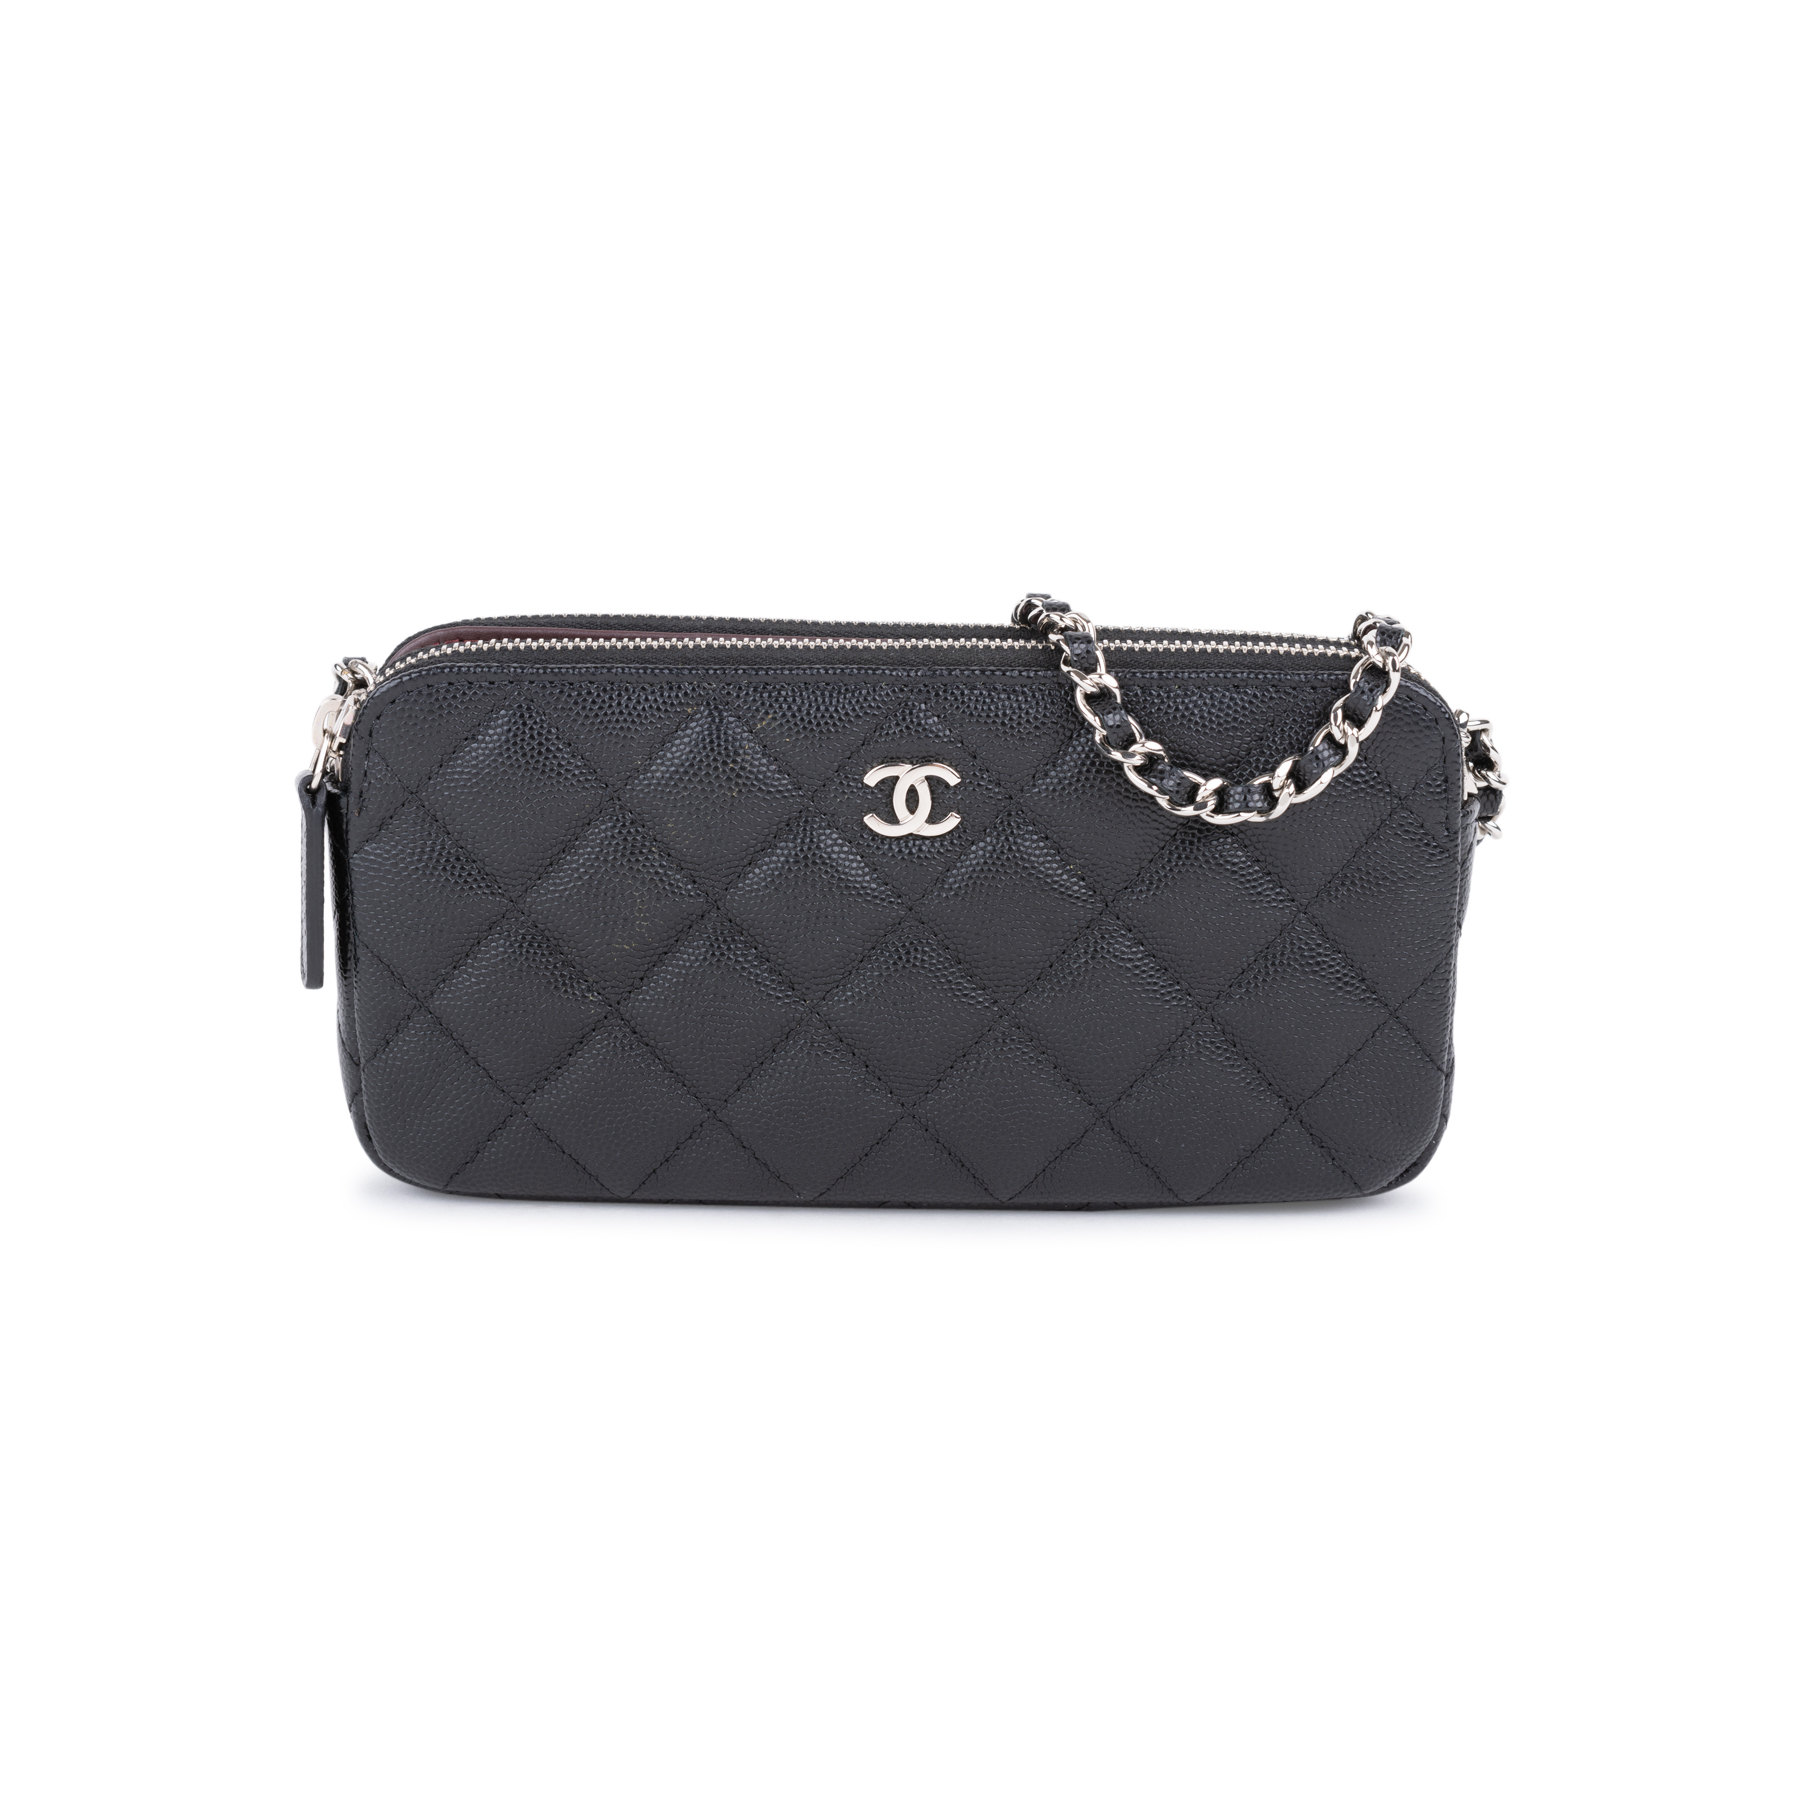 bb471ab2c198 Authentic Second Hand Chanel Classic Clutch with Chain (PSS-145-00269) |  THE FIFTH COLLECTION